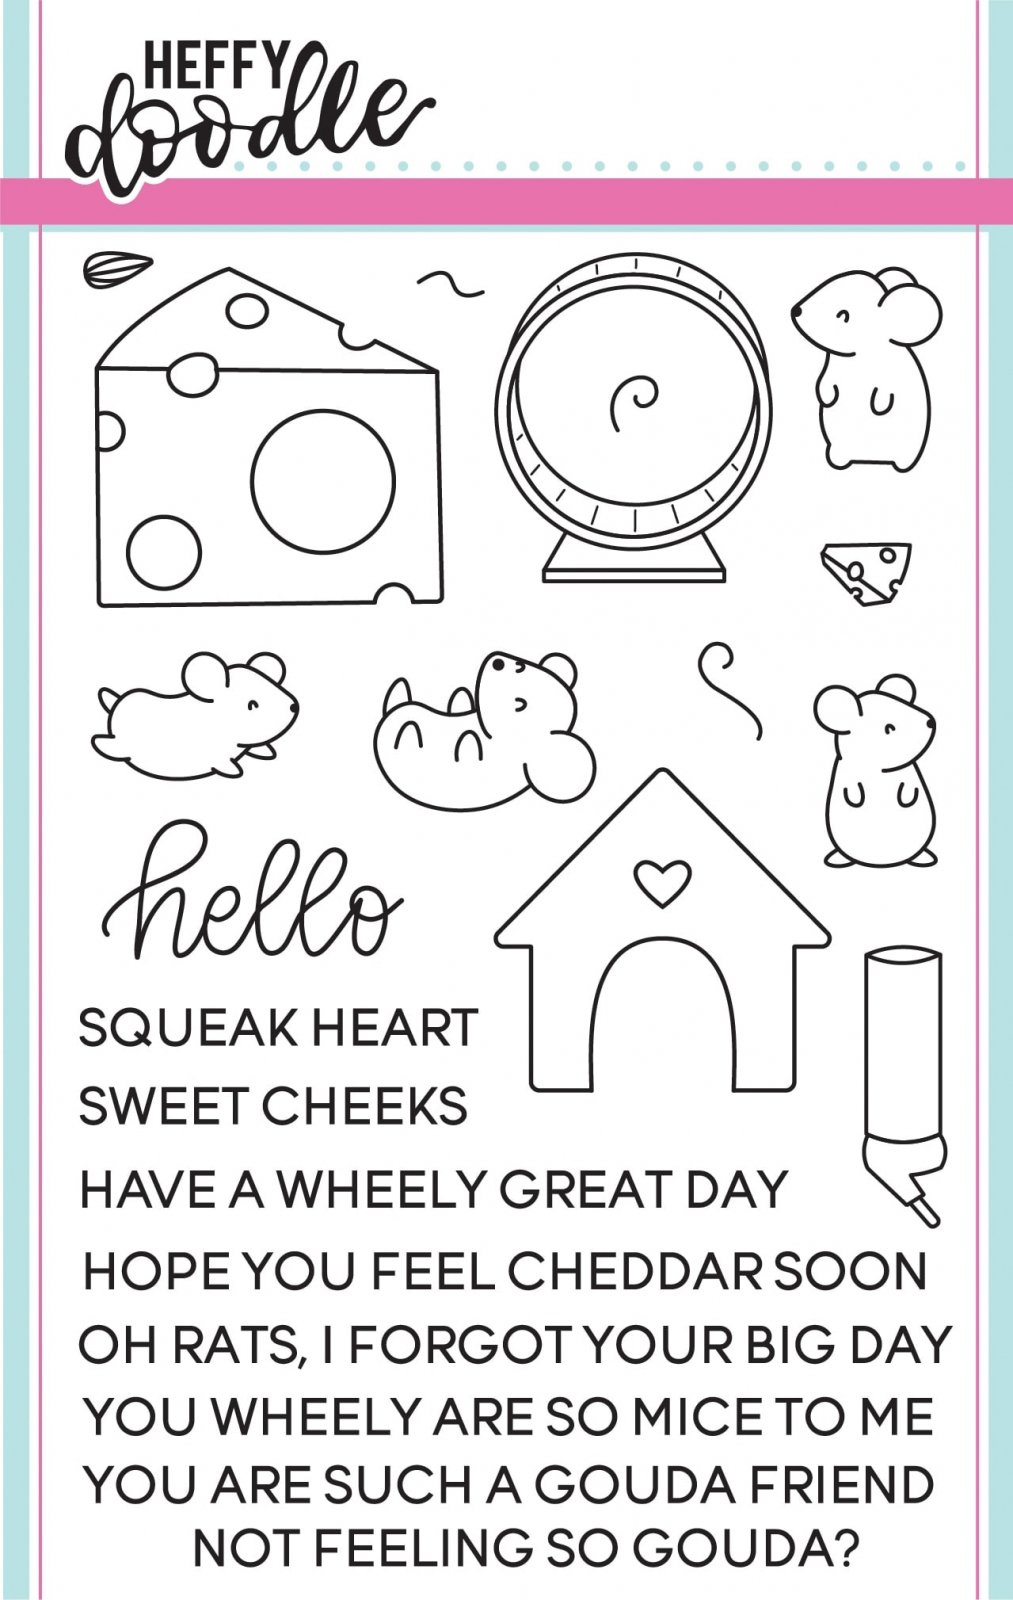 Heffy Doodle Clear Stamp Set: Hello Squeakheart